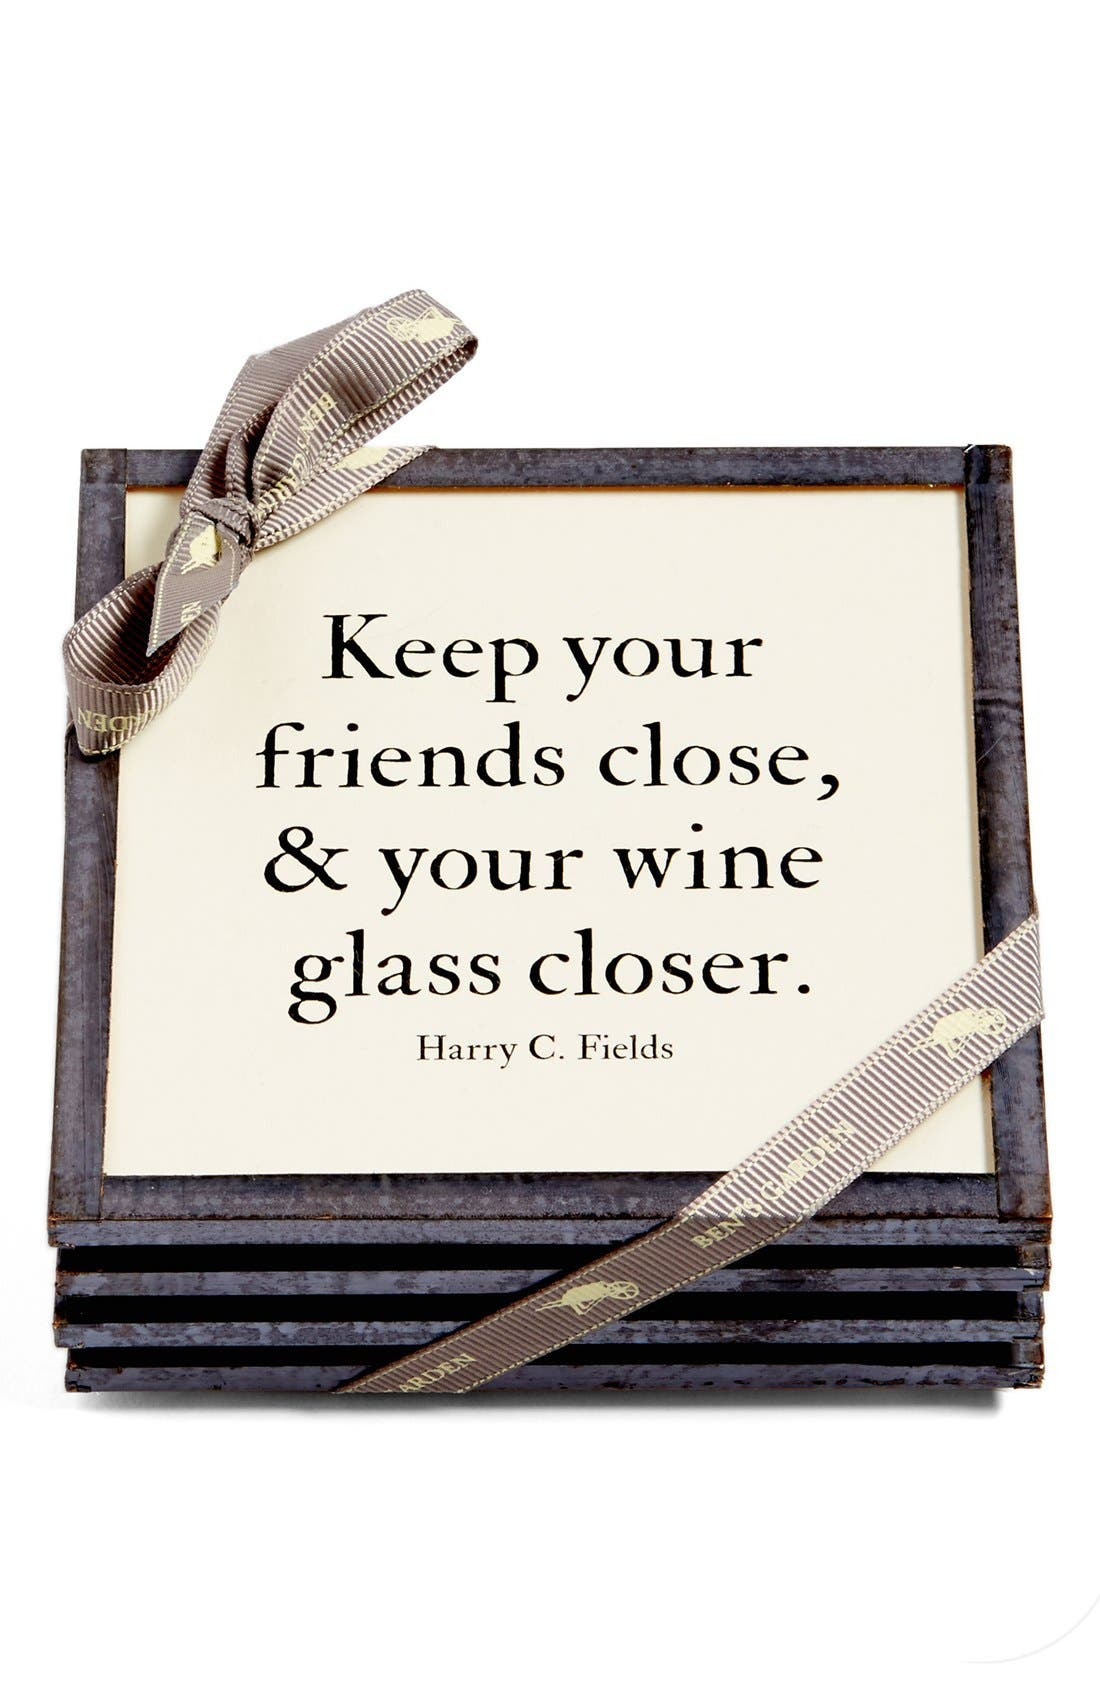 Ben's Garden 'Keep Your Friends Close' Coasters (Set of 4)